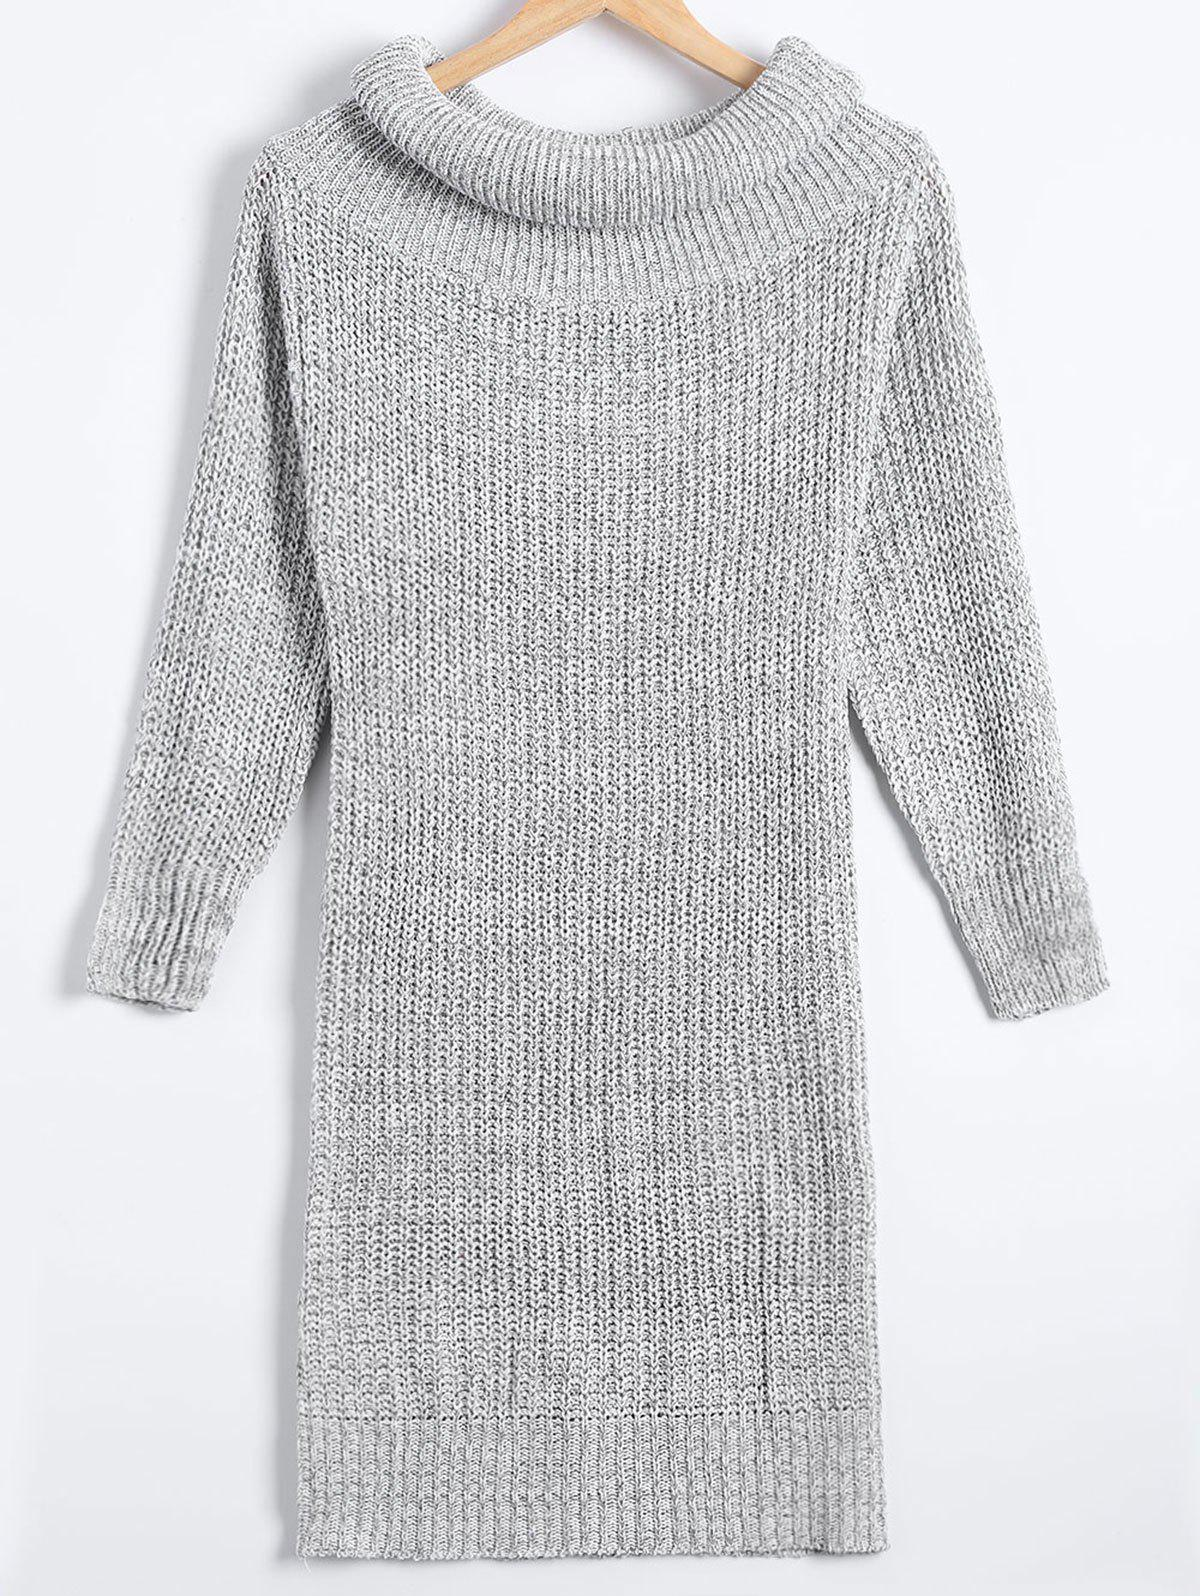 Gaine Pull à col roulé Robe - Gris Clair ONE SIZE